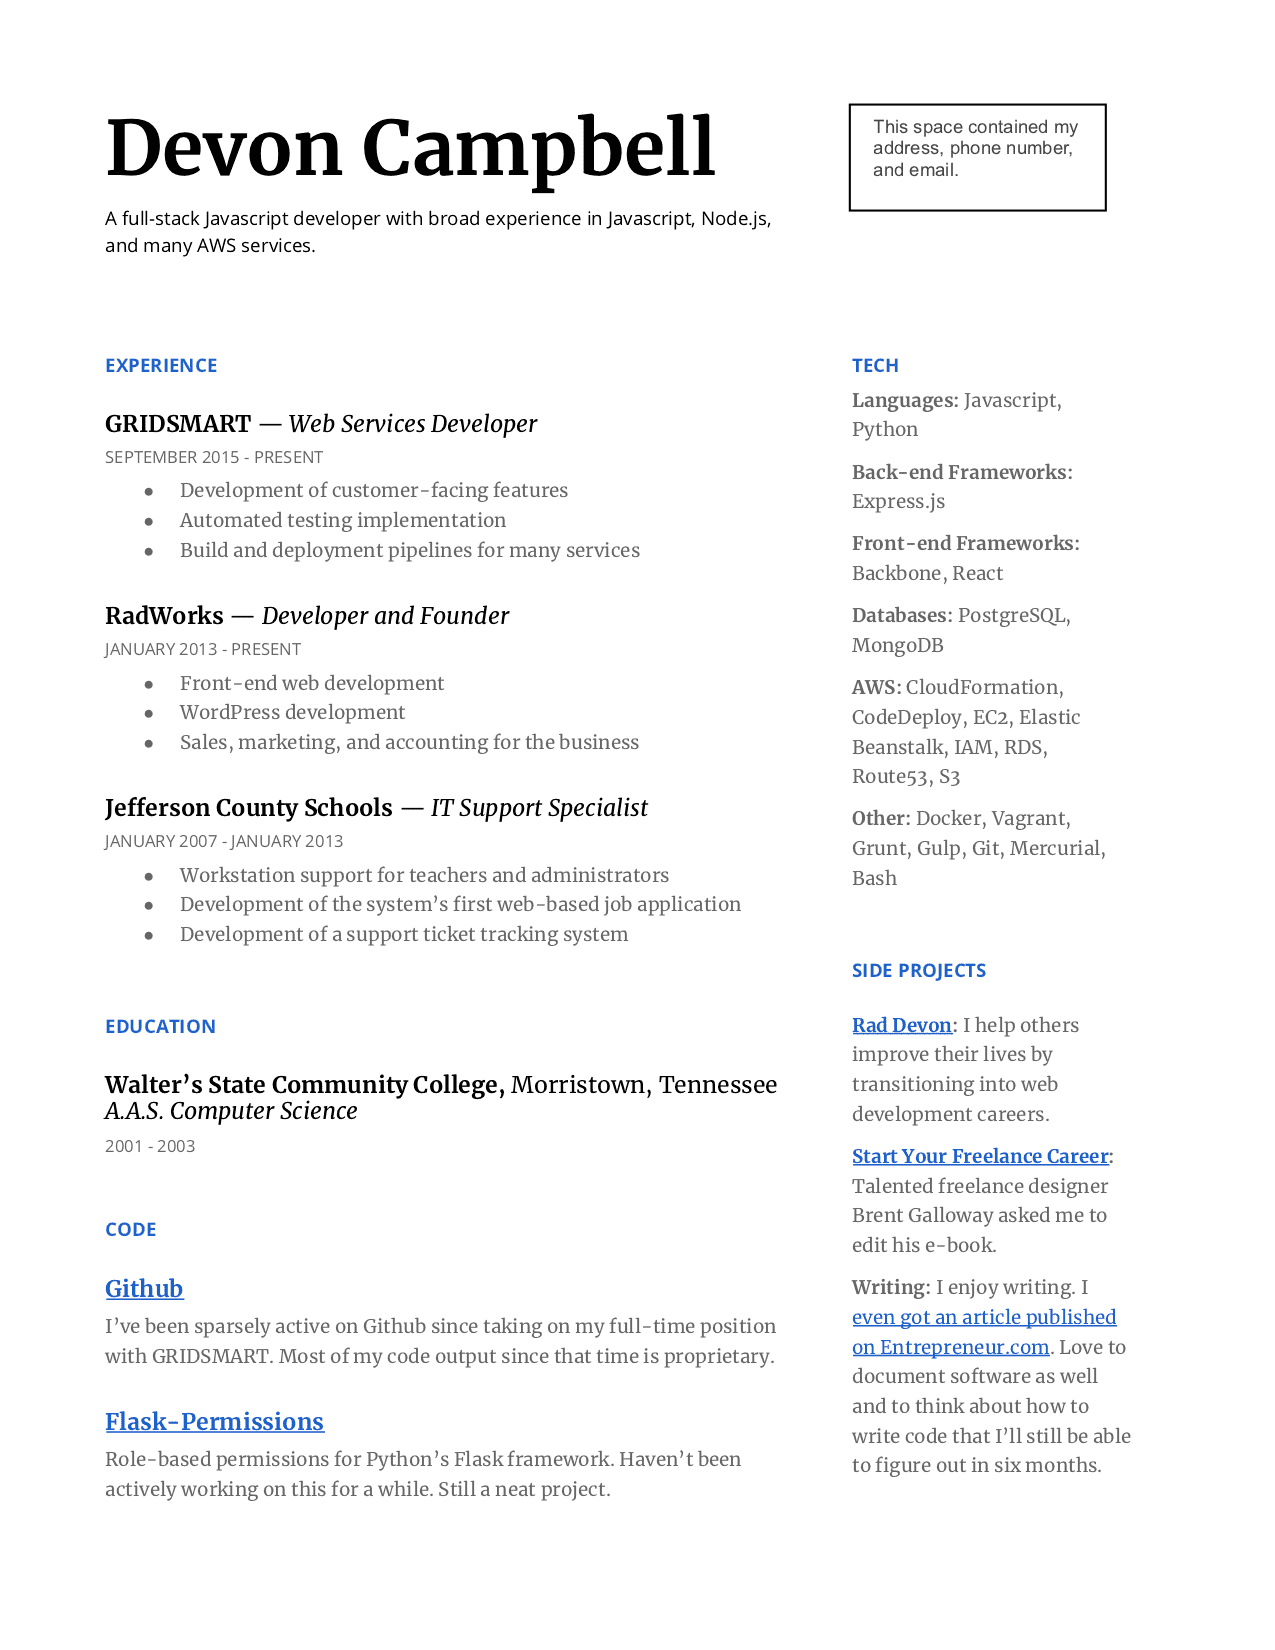 web developer resume with no experience